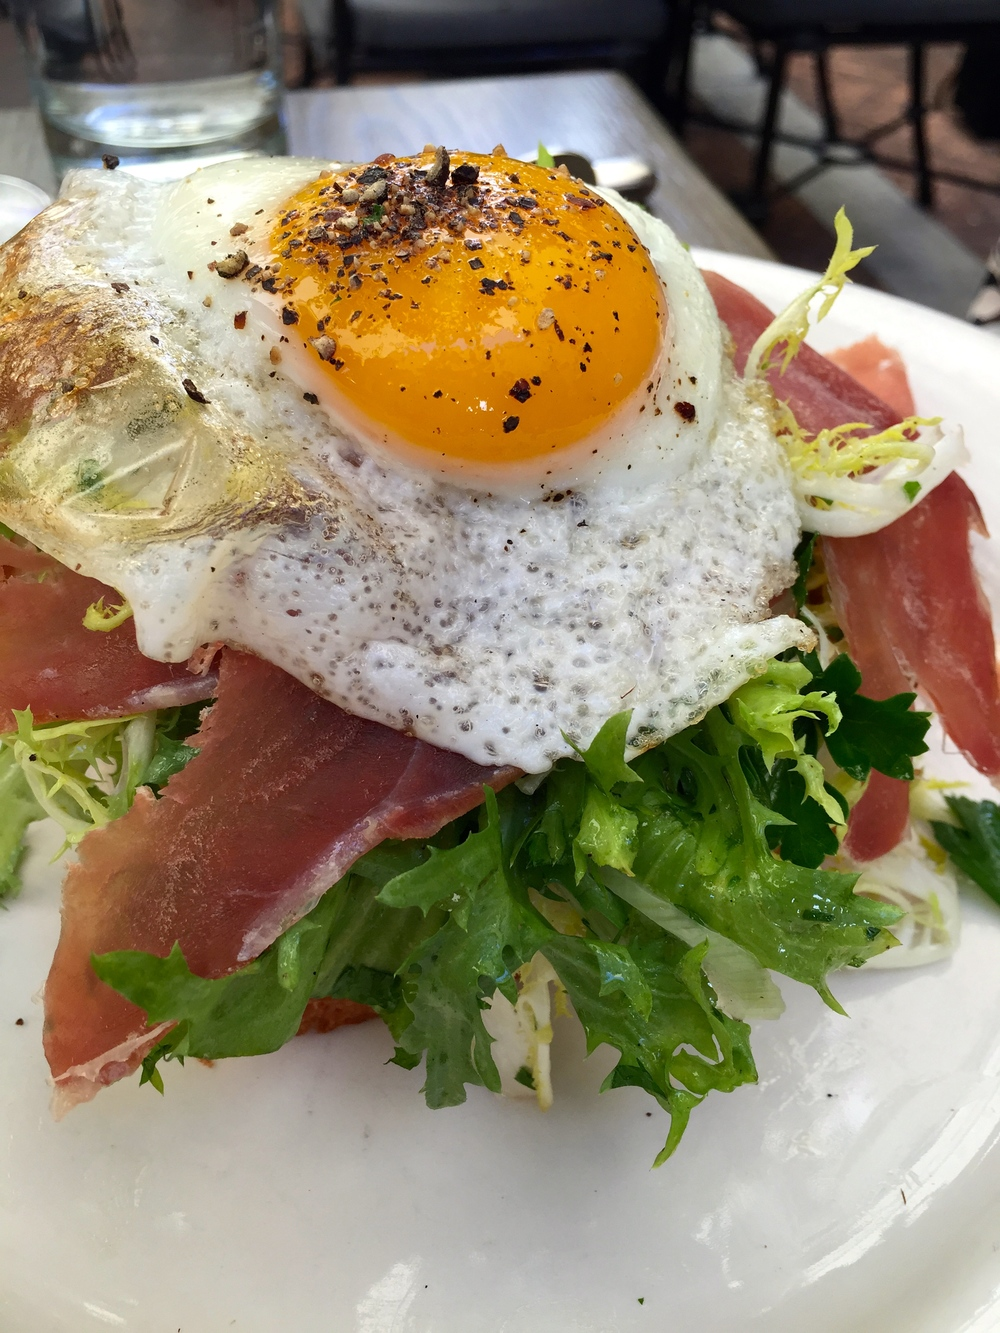 A.O.C. brioche with melted gruyère, frisée, prosciutto & sunny-side up egg.